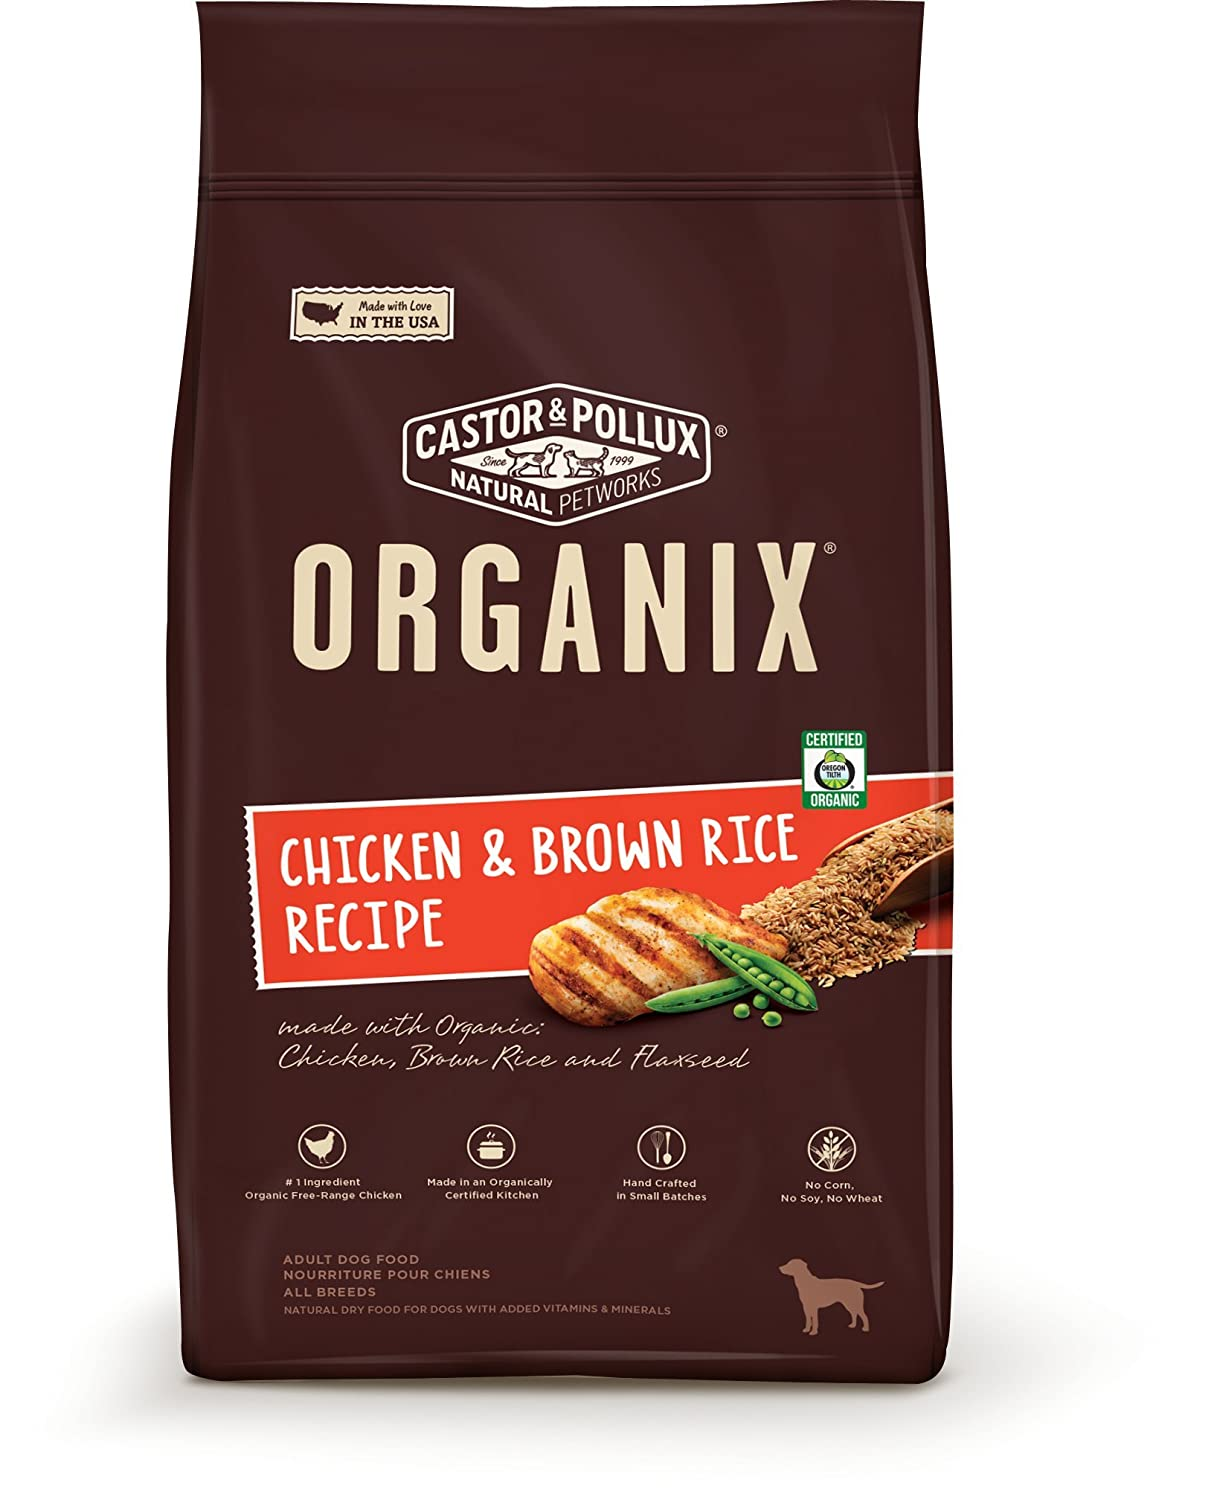 Top 6 Best Organic Dog Foods for Adult Dogs Reviews in 2020 3